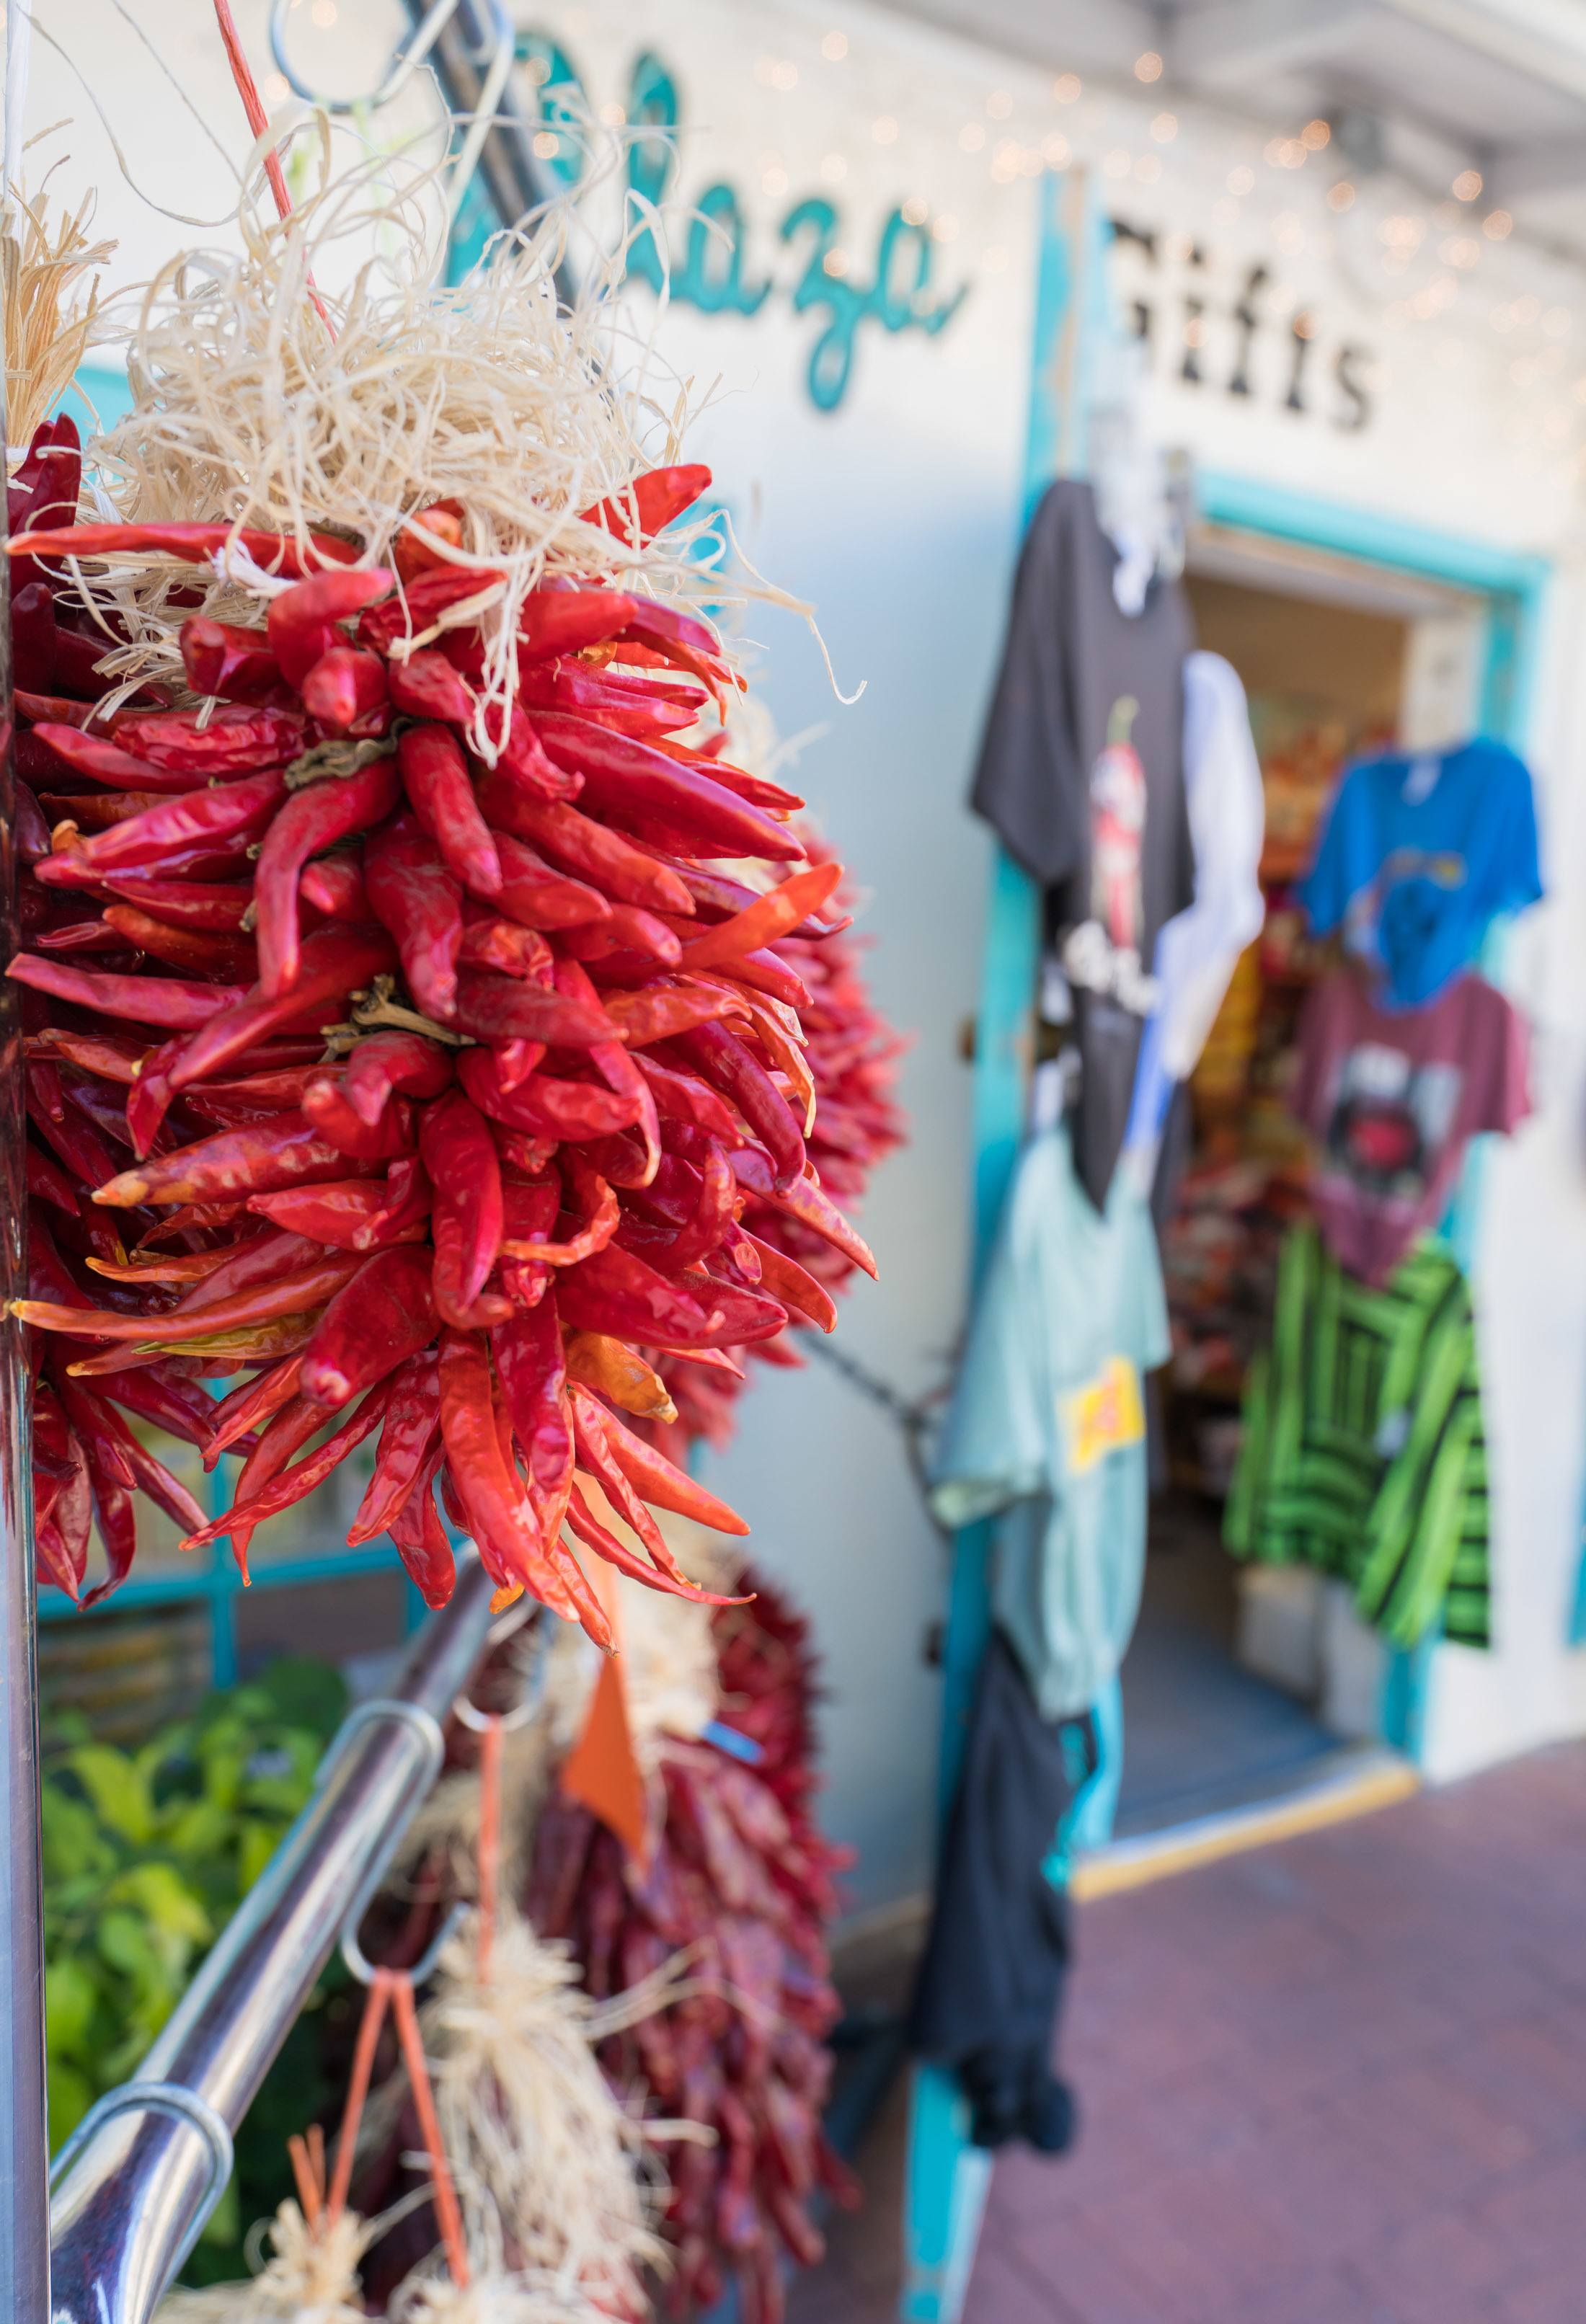 Dried red chilis hanging at a store in Old Town Albuquerque.